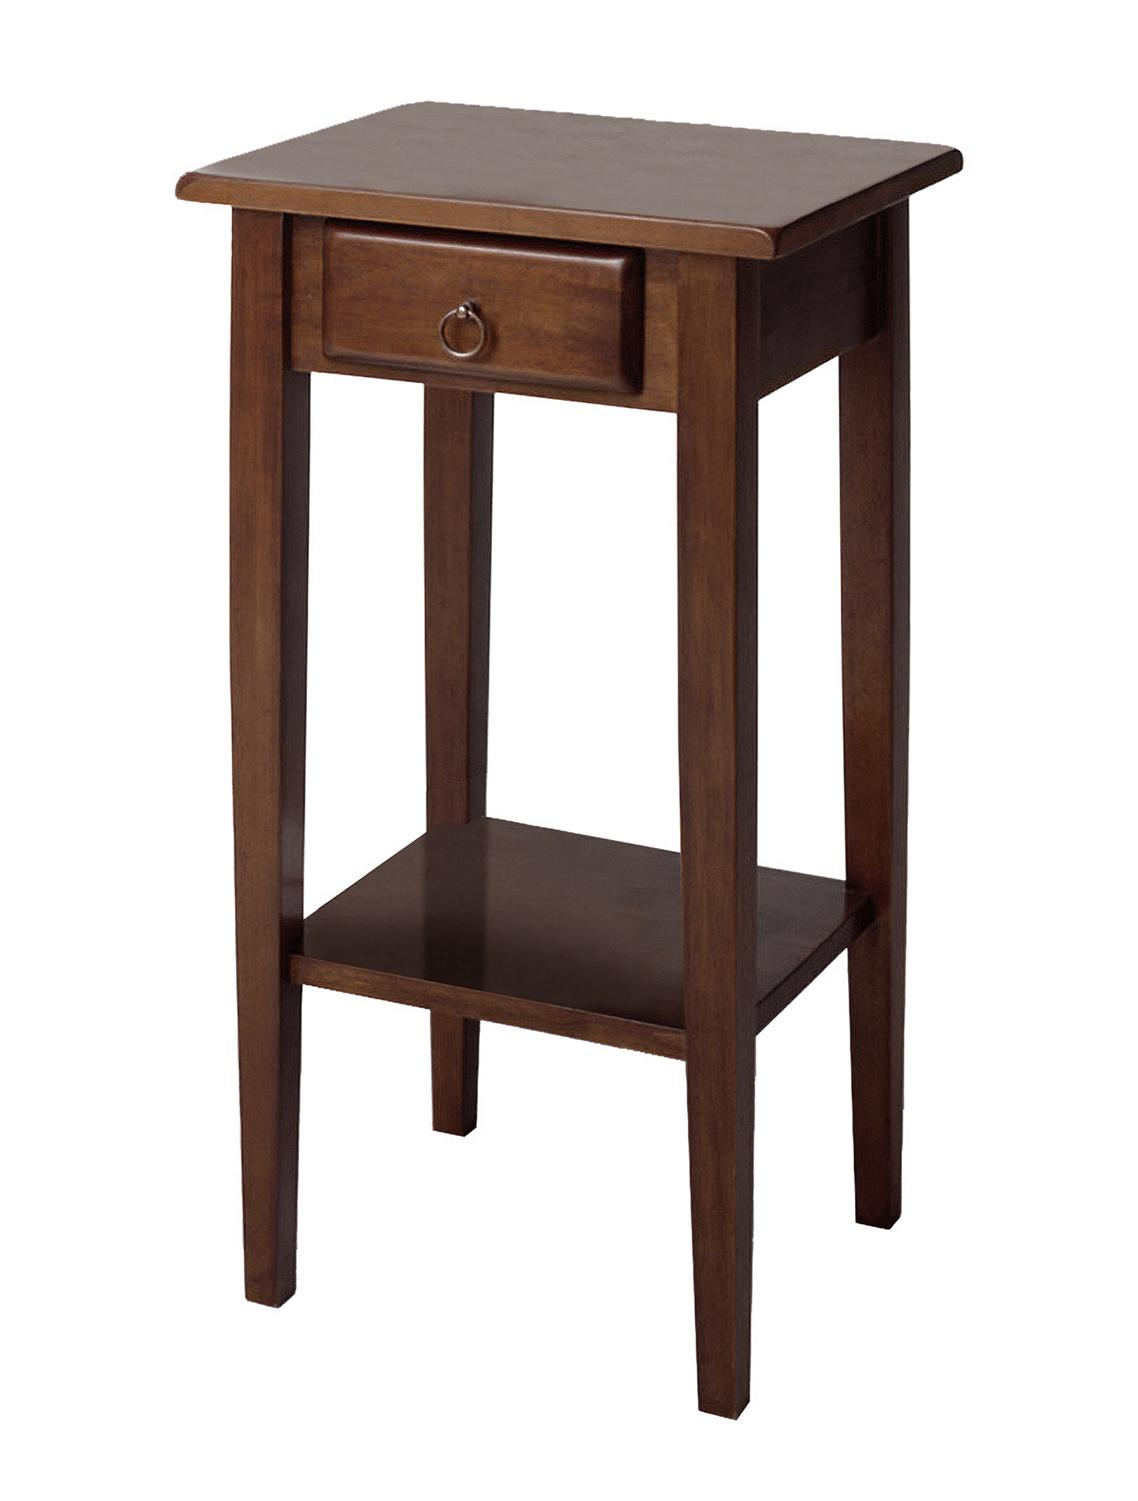 winsome wood regalia accent table with drawer shelf small shelves patio furniture breakfast room tables and chairs coffee modern medium oak console outdoor fireplace narrow corner